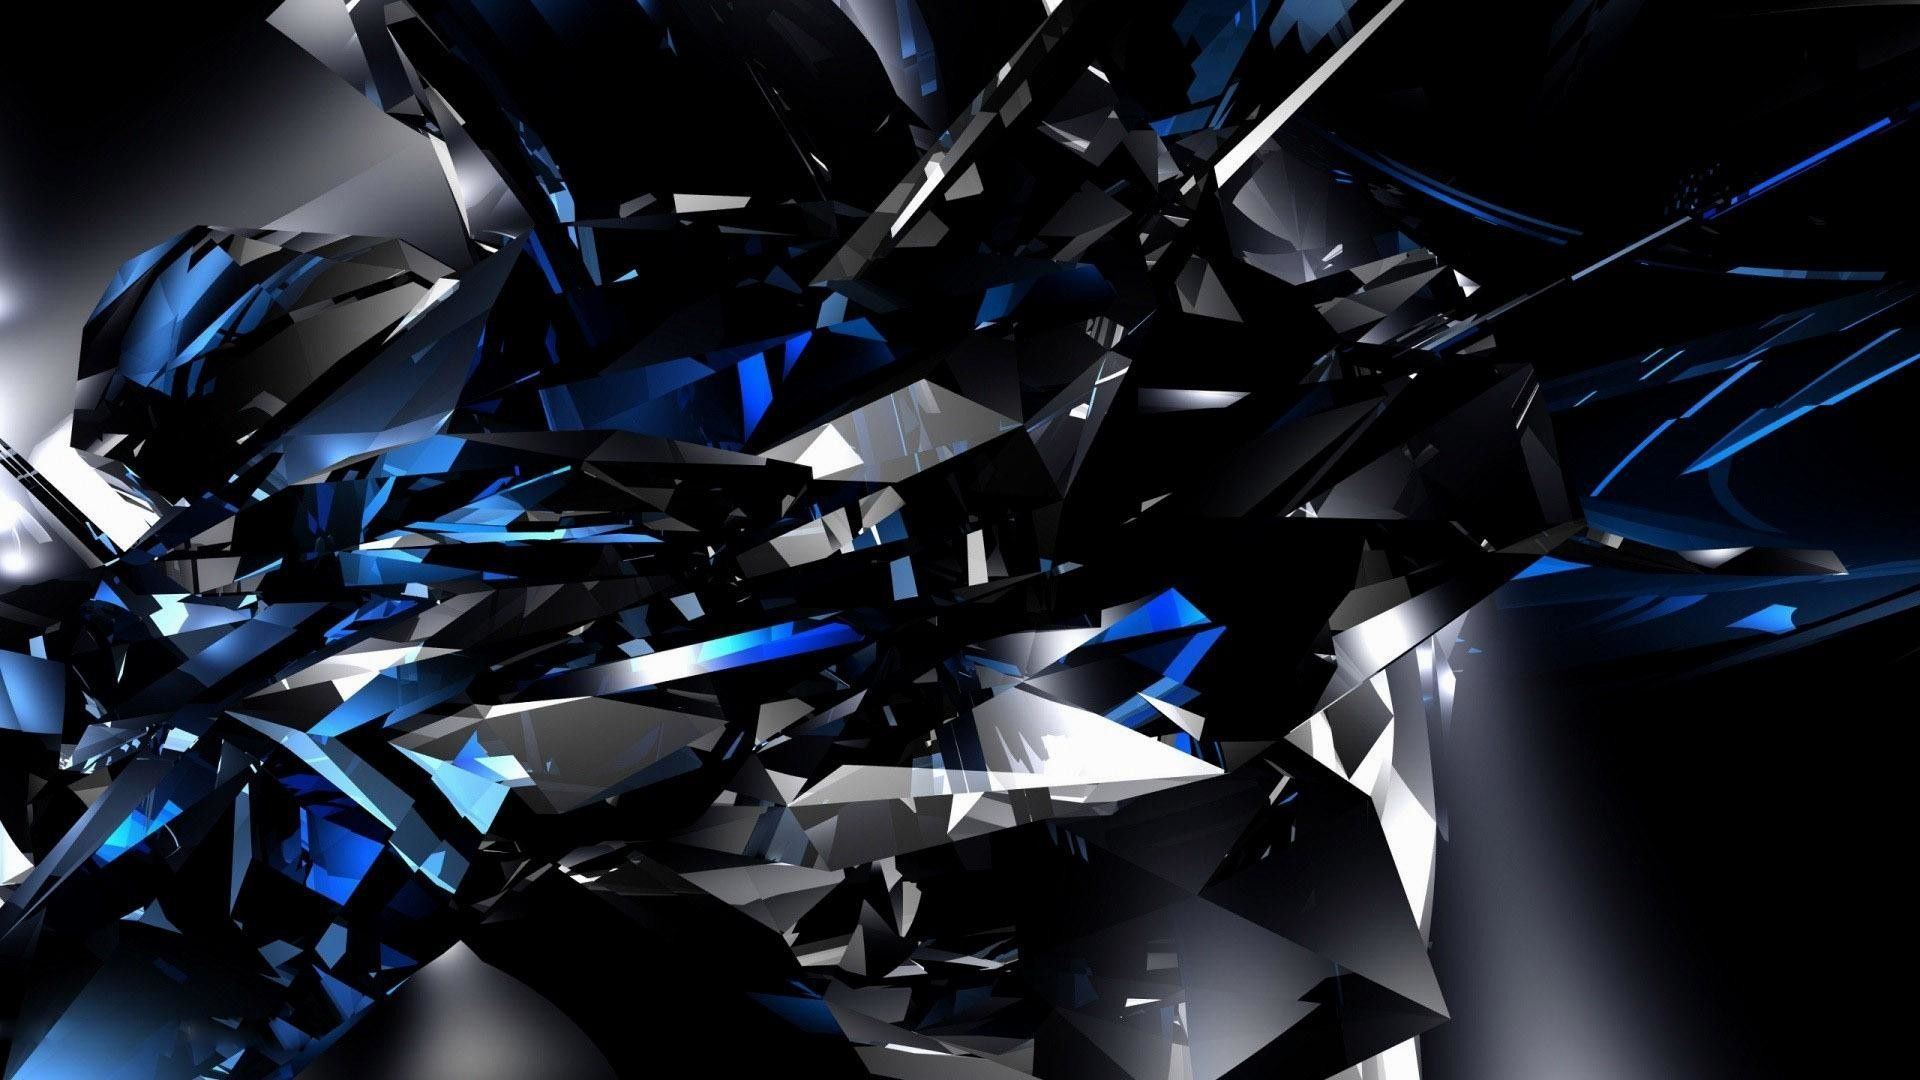 1920x1080 Hd Black And Blue Wallpaper Black And Blue Background Black And Blue Wallpaper Blue Crystal Wallpaper